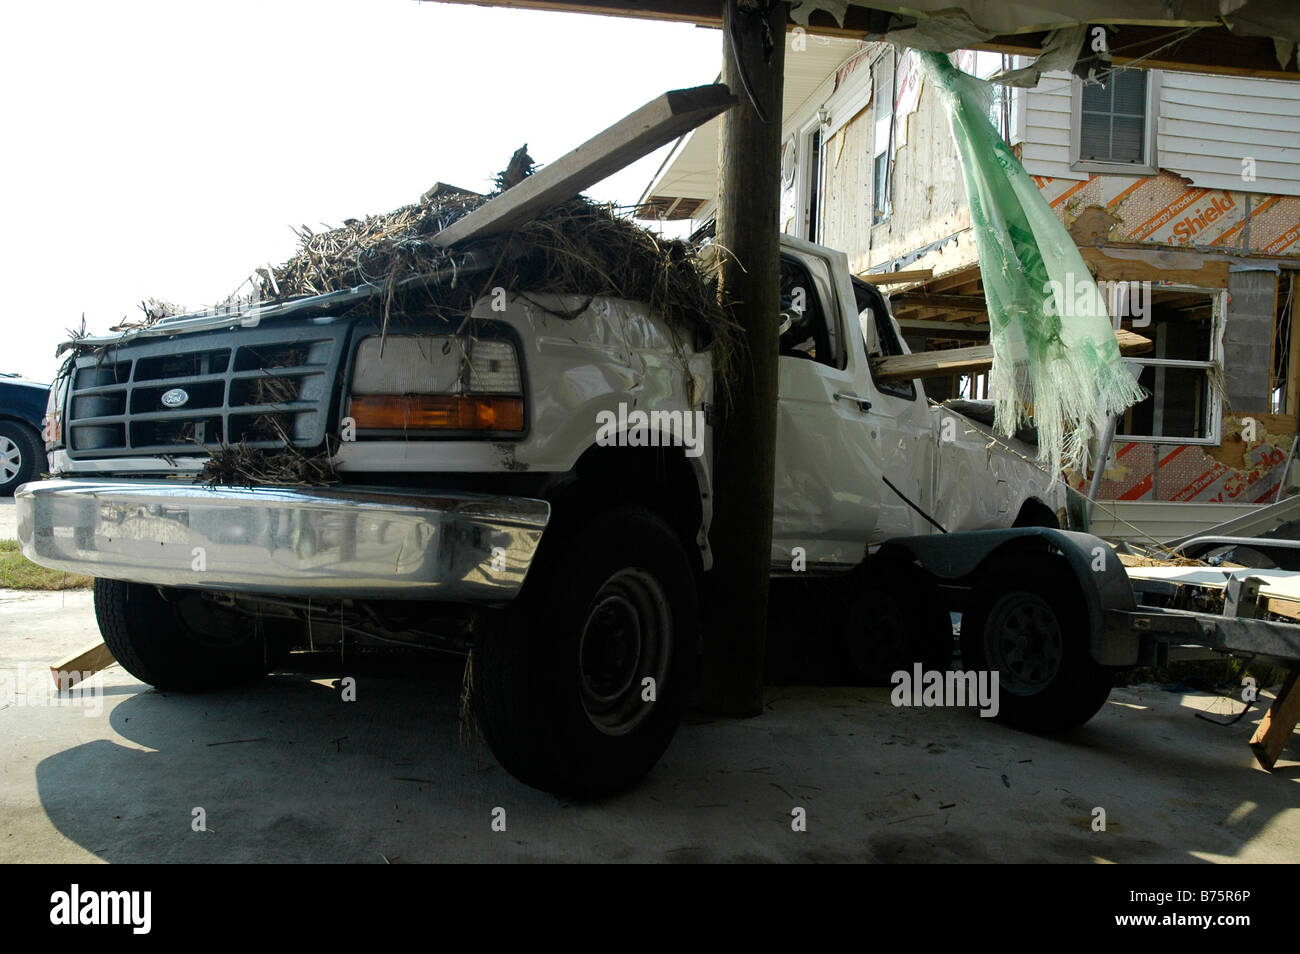 barely recognisable SUV after being wrecked in Hurricane katrina - Stock Image